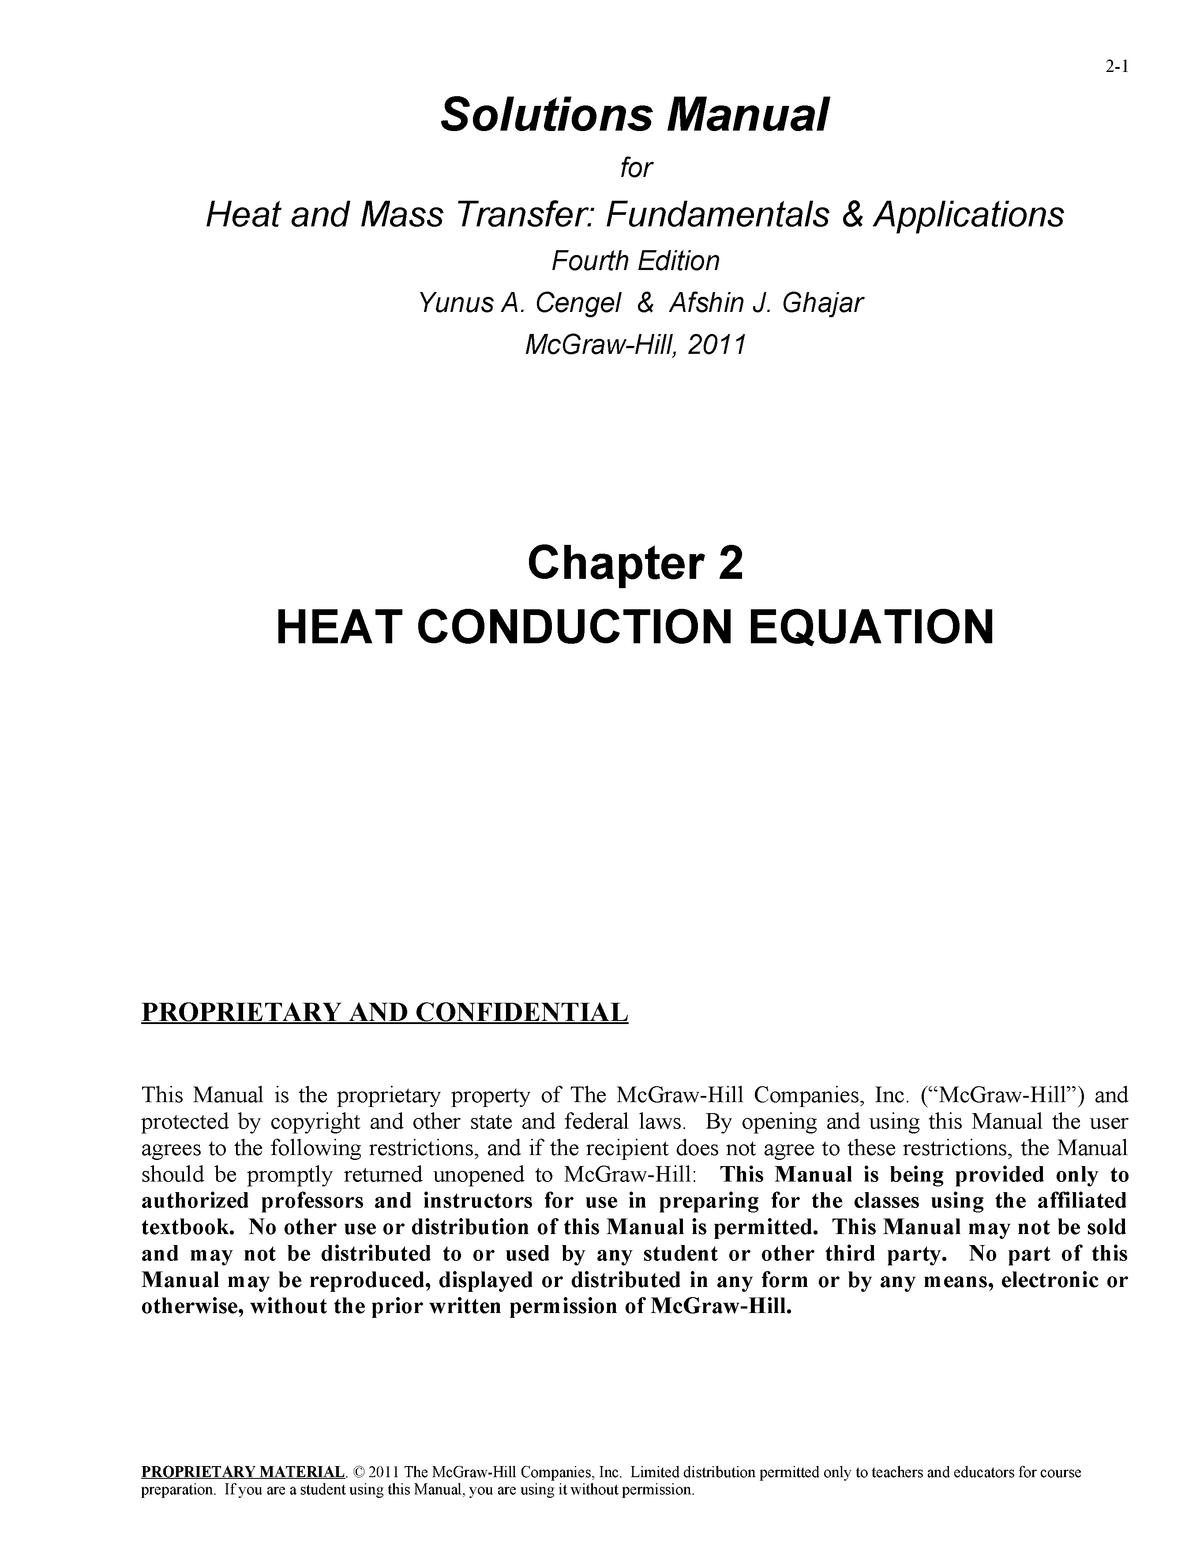 Heat and Mass Transfer 4th Edition Cengel Solution Manual